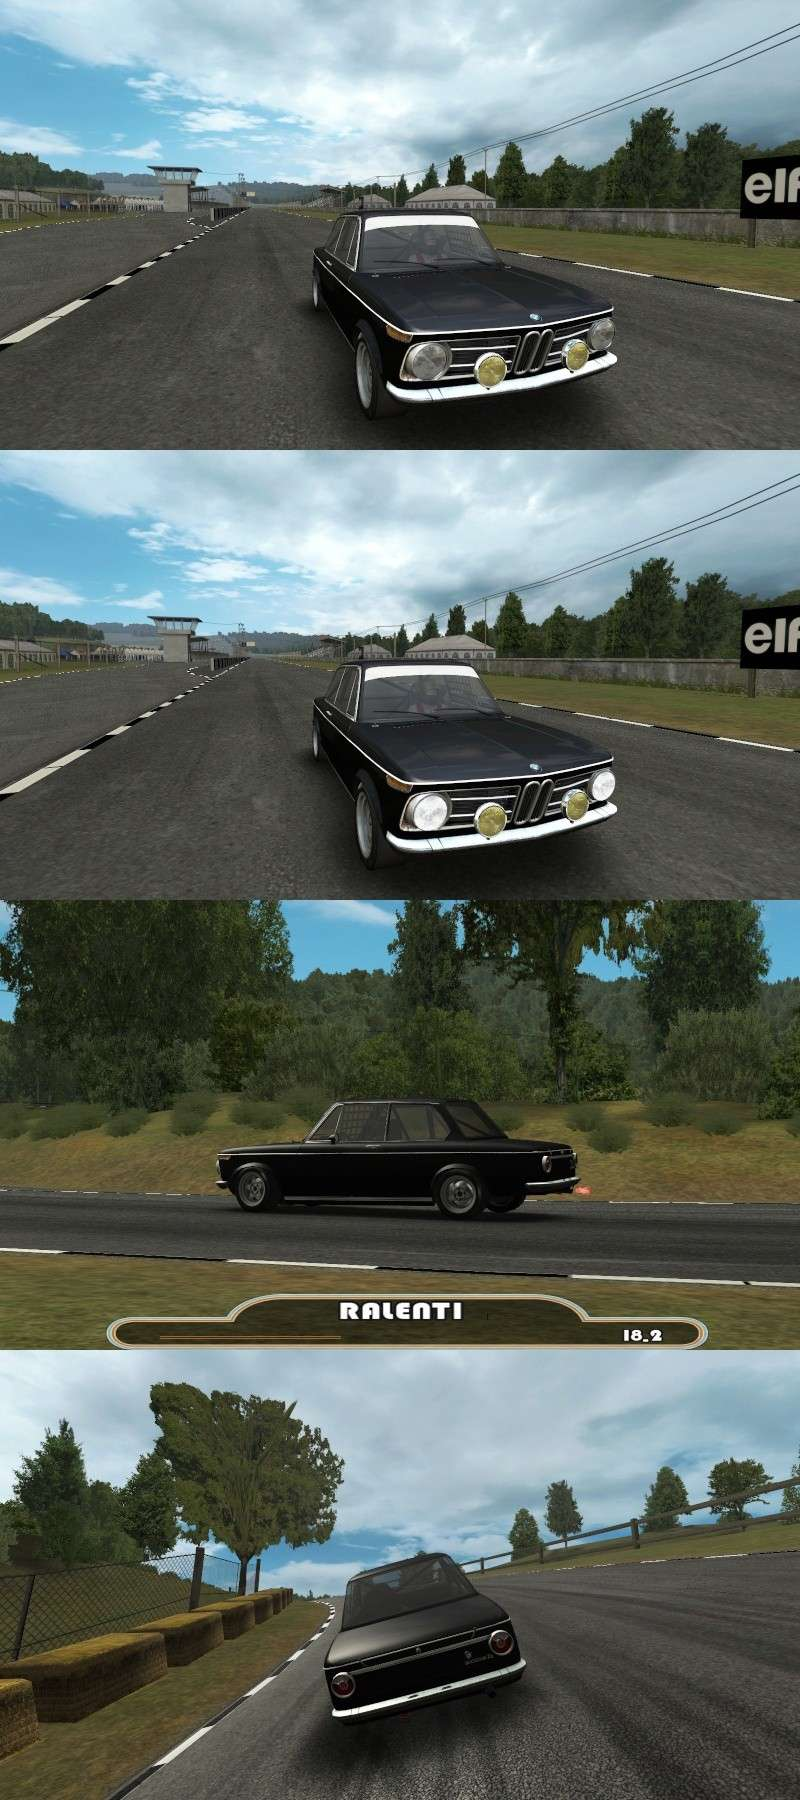 BMW 2002 from the Retro Expansion Pack - Page 3 Untitl12